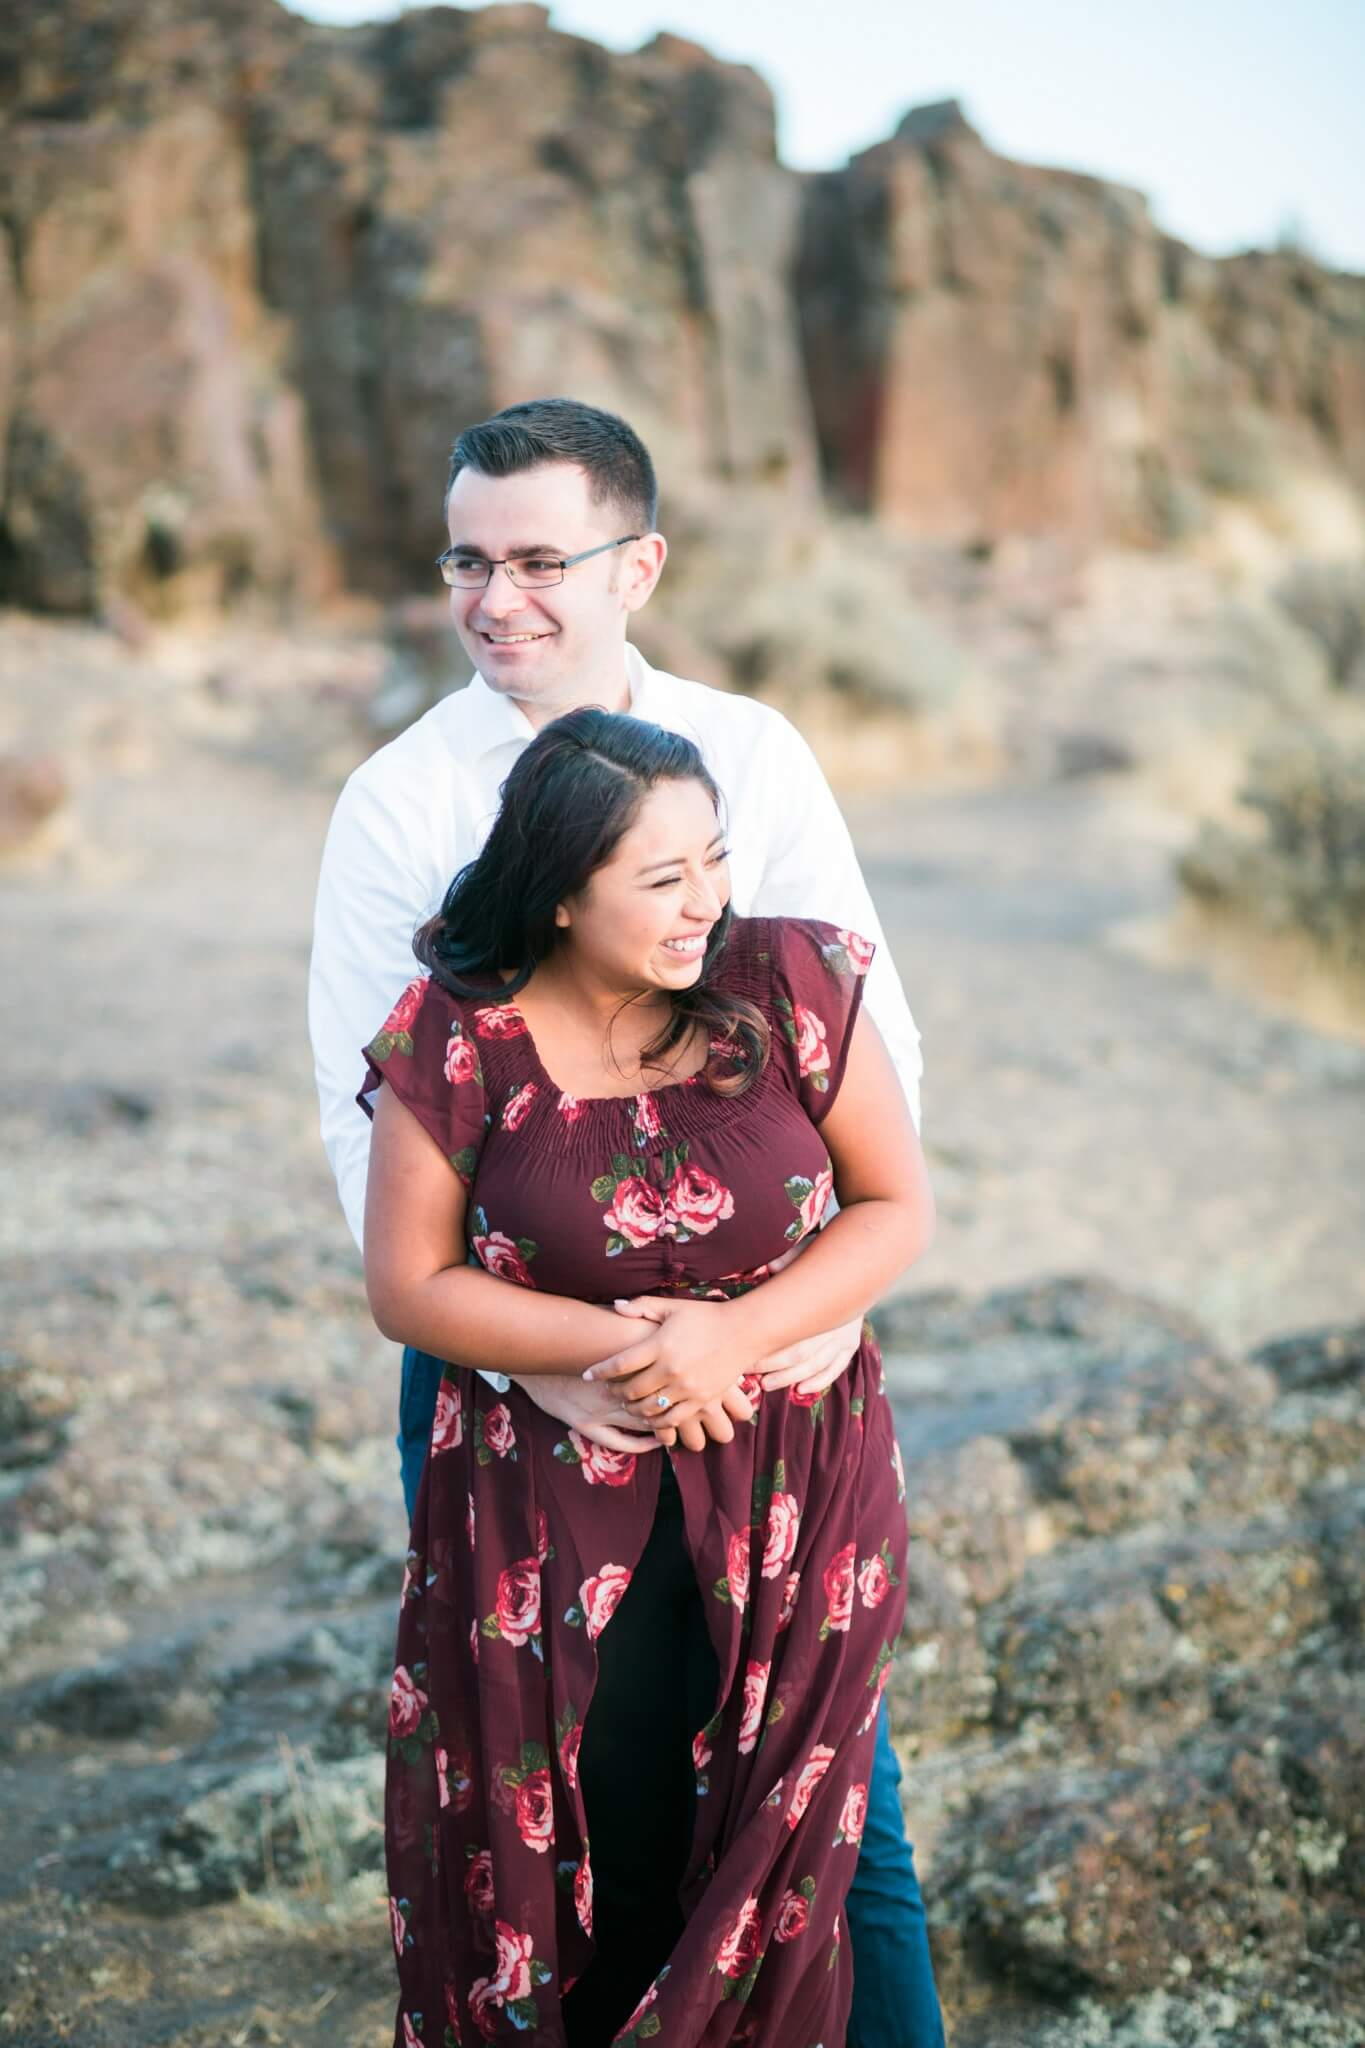 Lesly & Michael Vantage Engagement by Bill Weisgerber Spokane Photographer (38 of 71).jpg